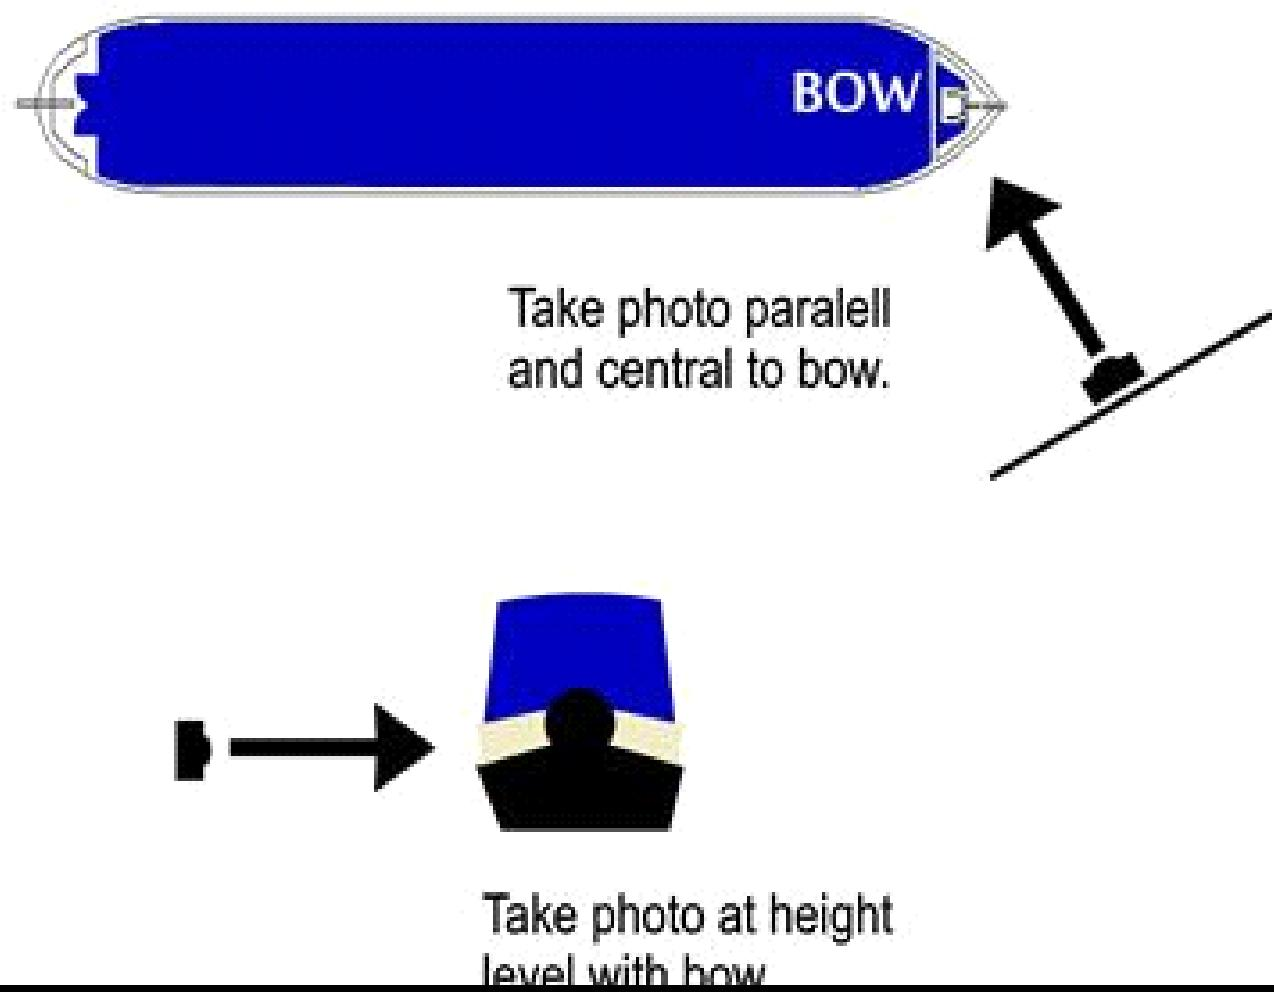 How to take a picture of boat bow